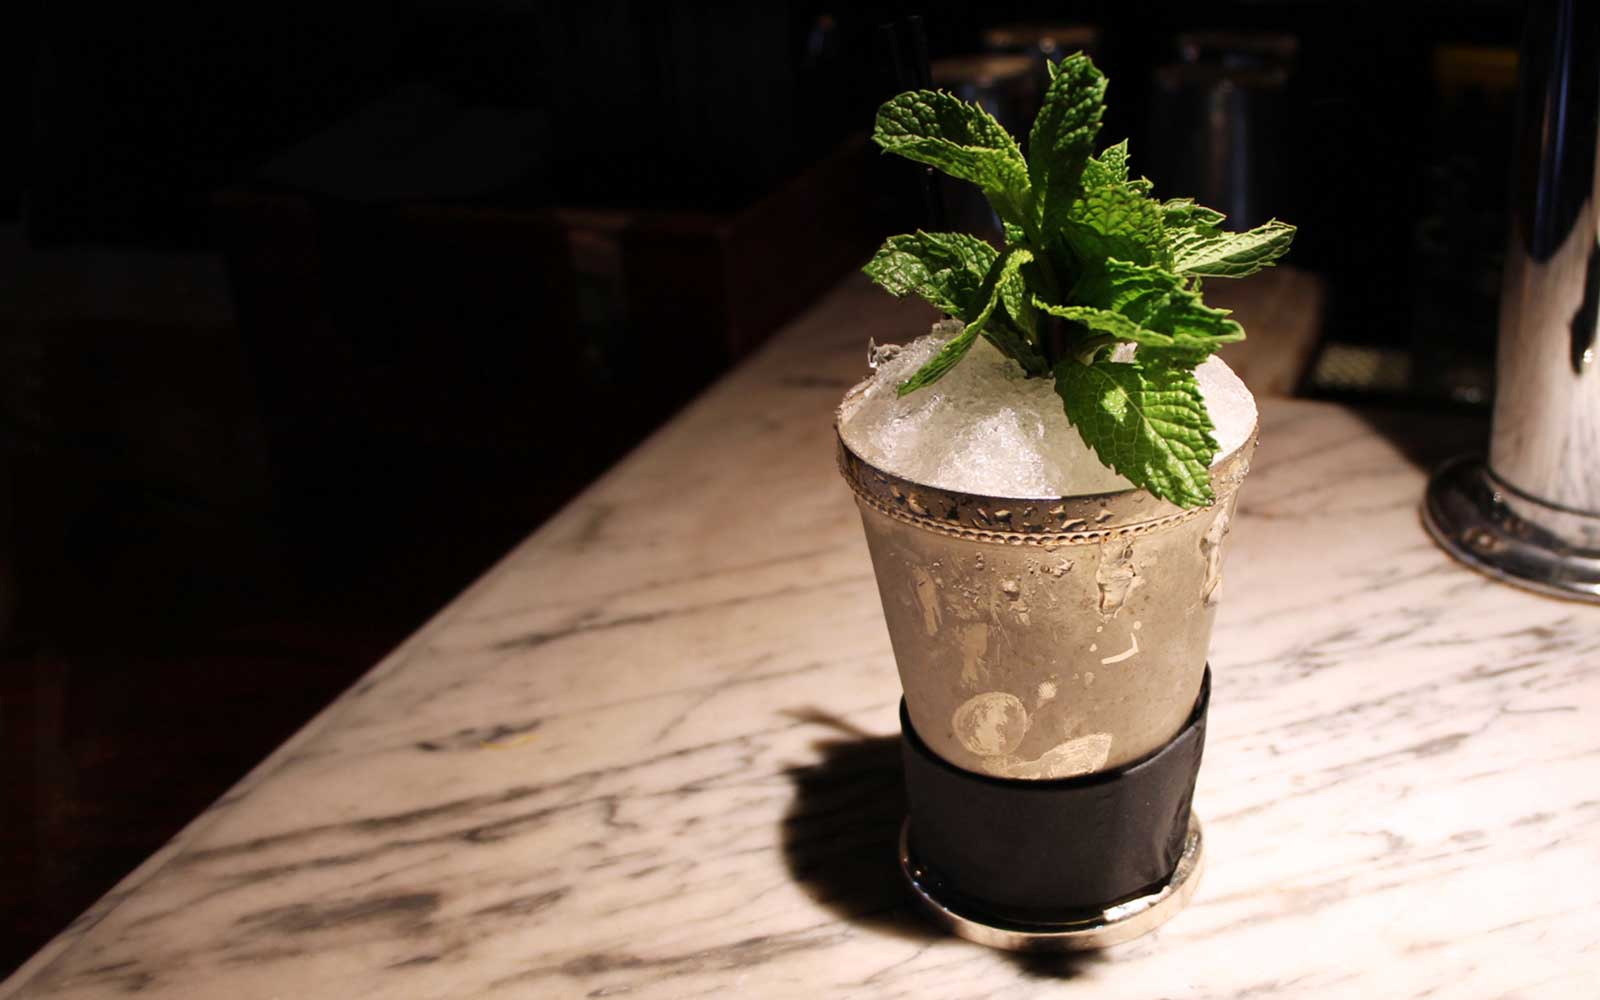 Where to find the best mint juleps in the U.S.